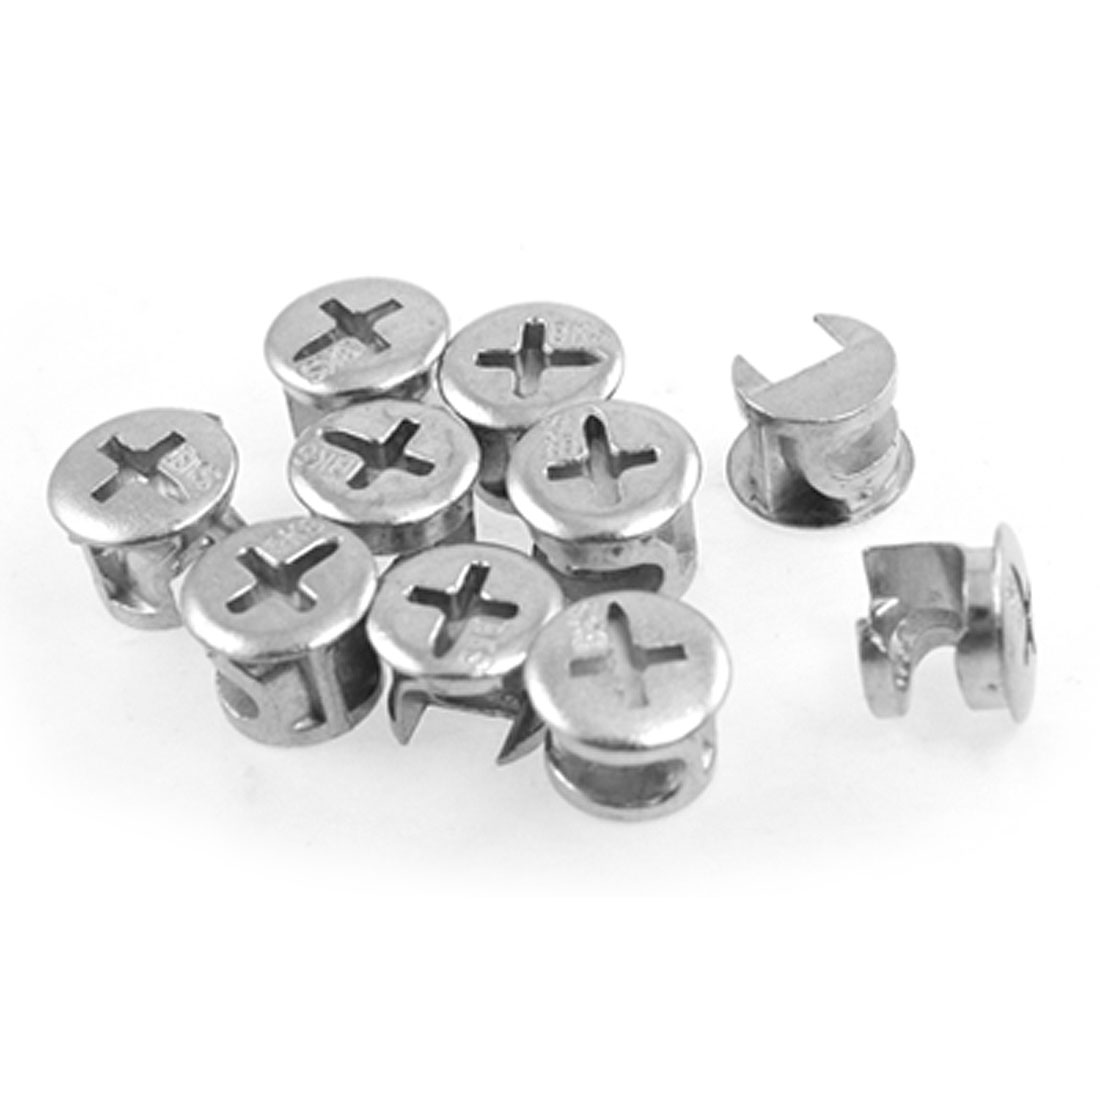 "10 Pcs 13.4mm 0.527"" Dia Head Furniture Connect Cam Fittings"